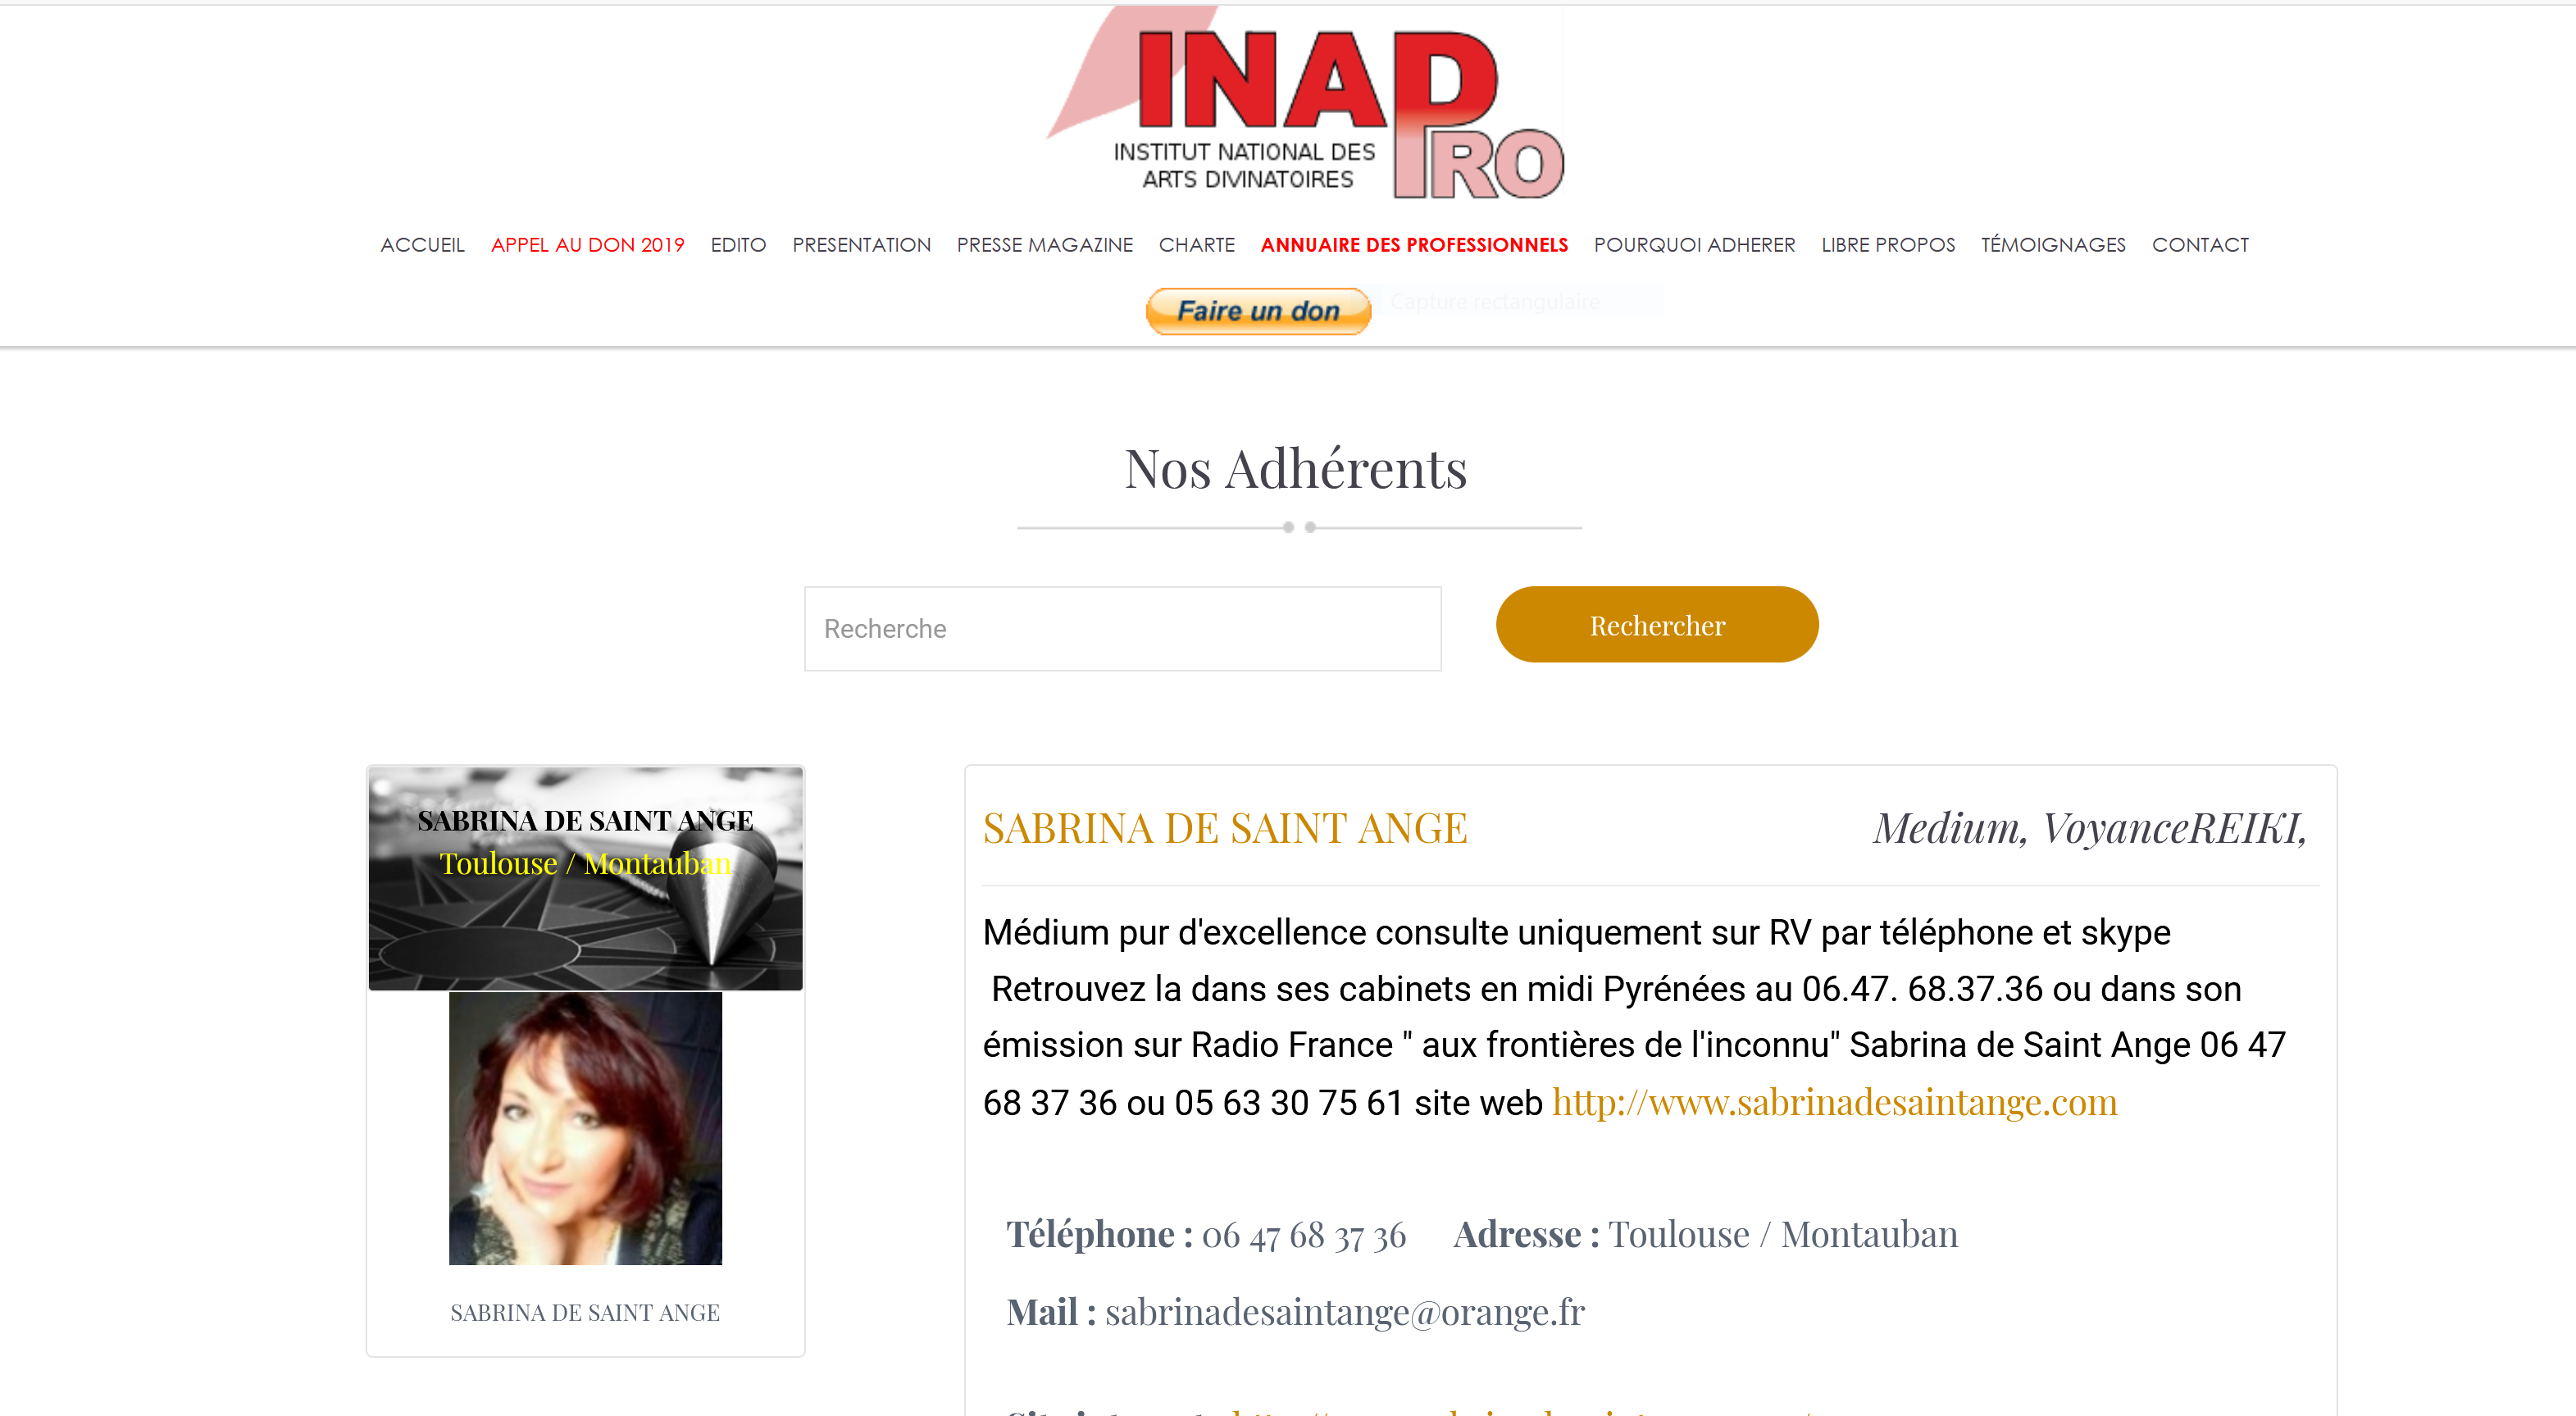 INAD